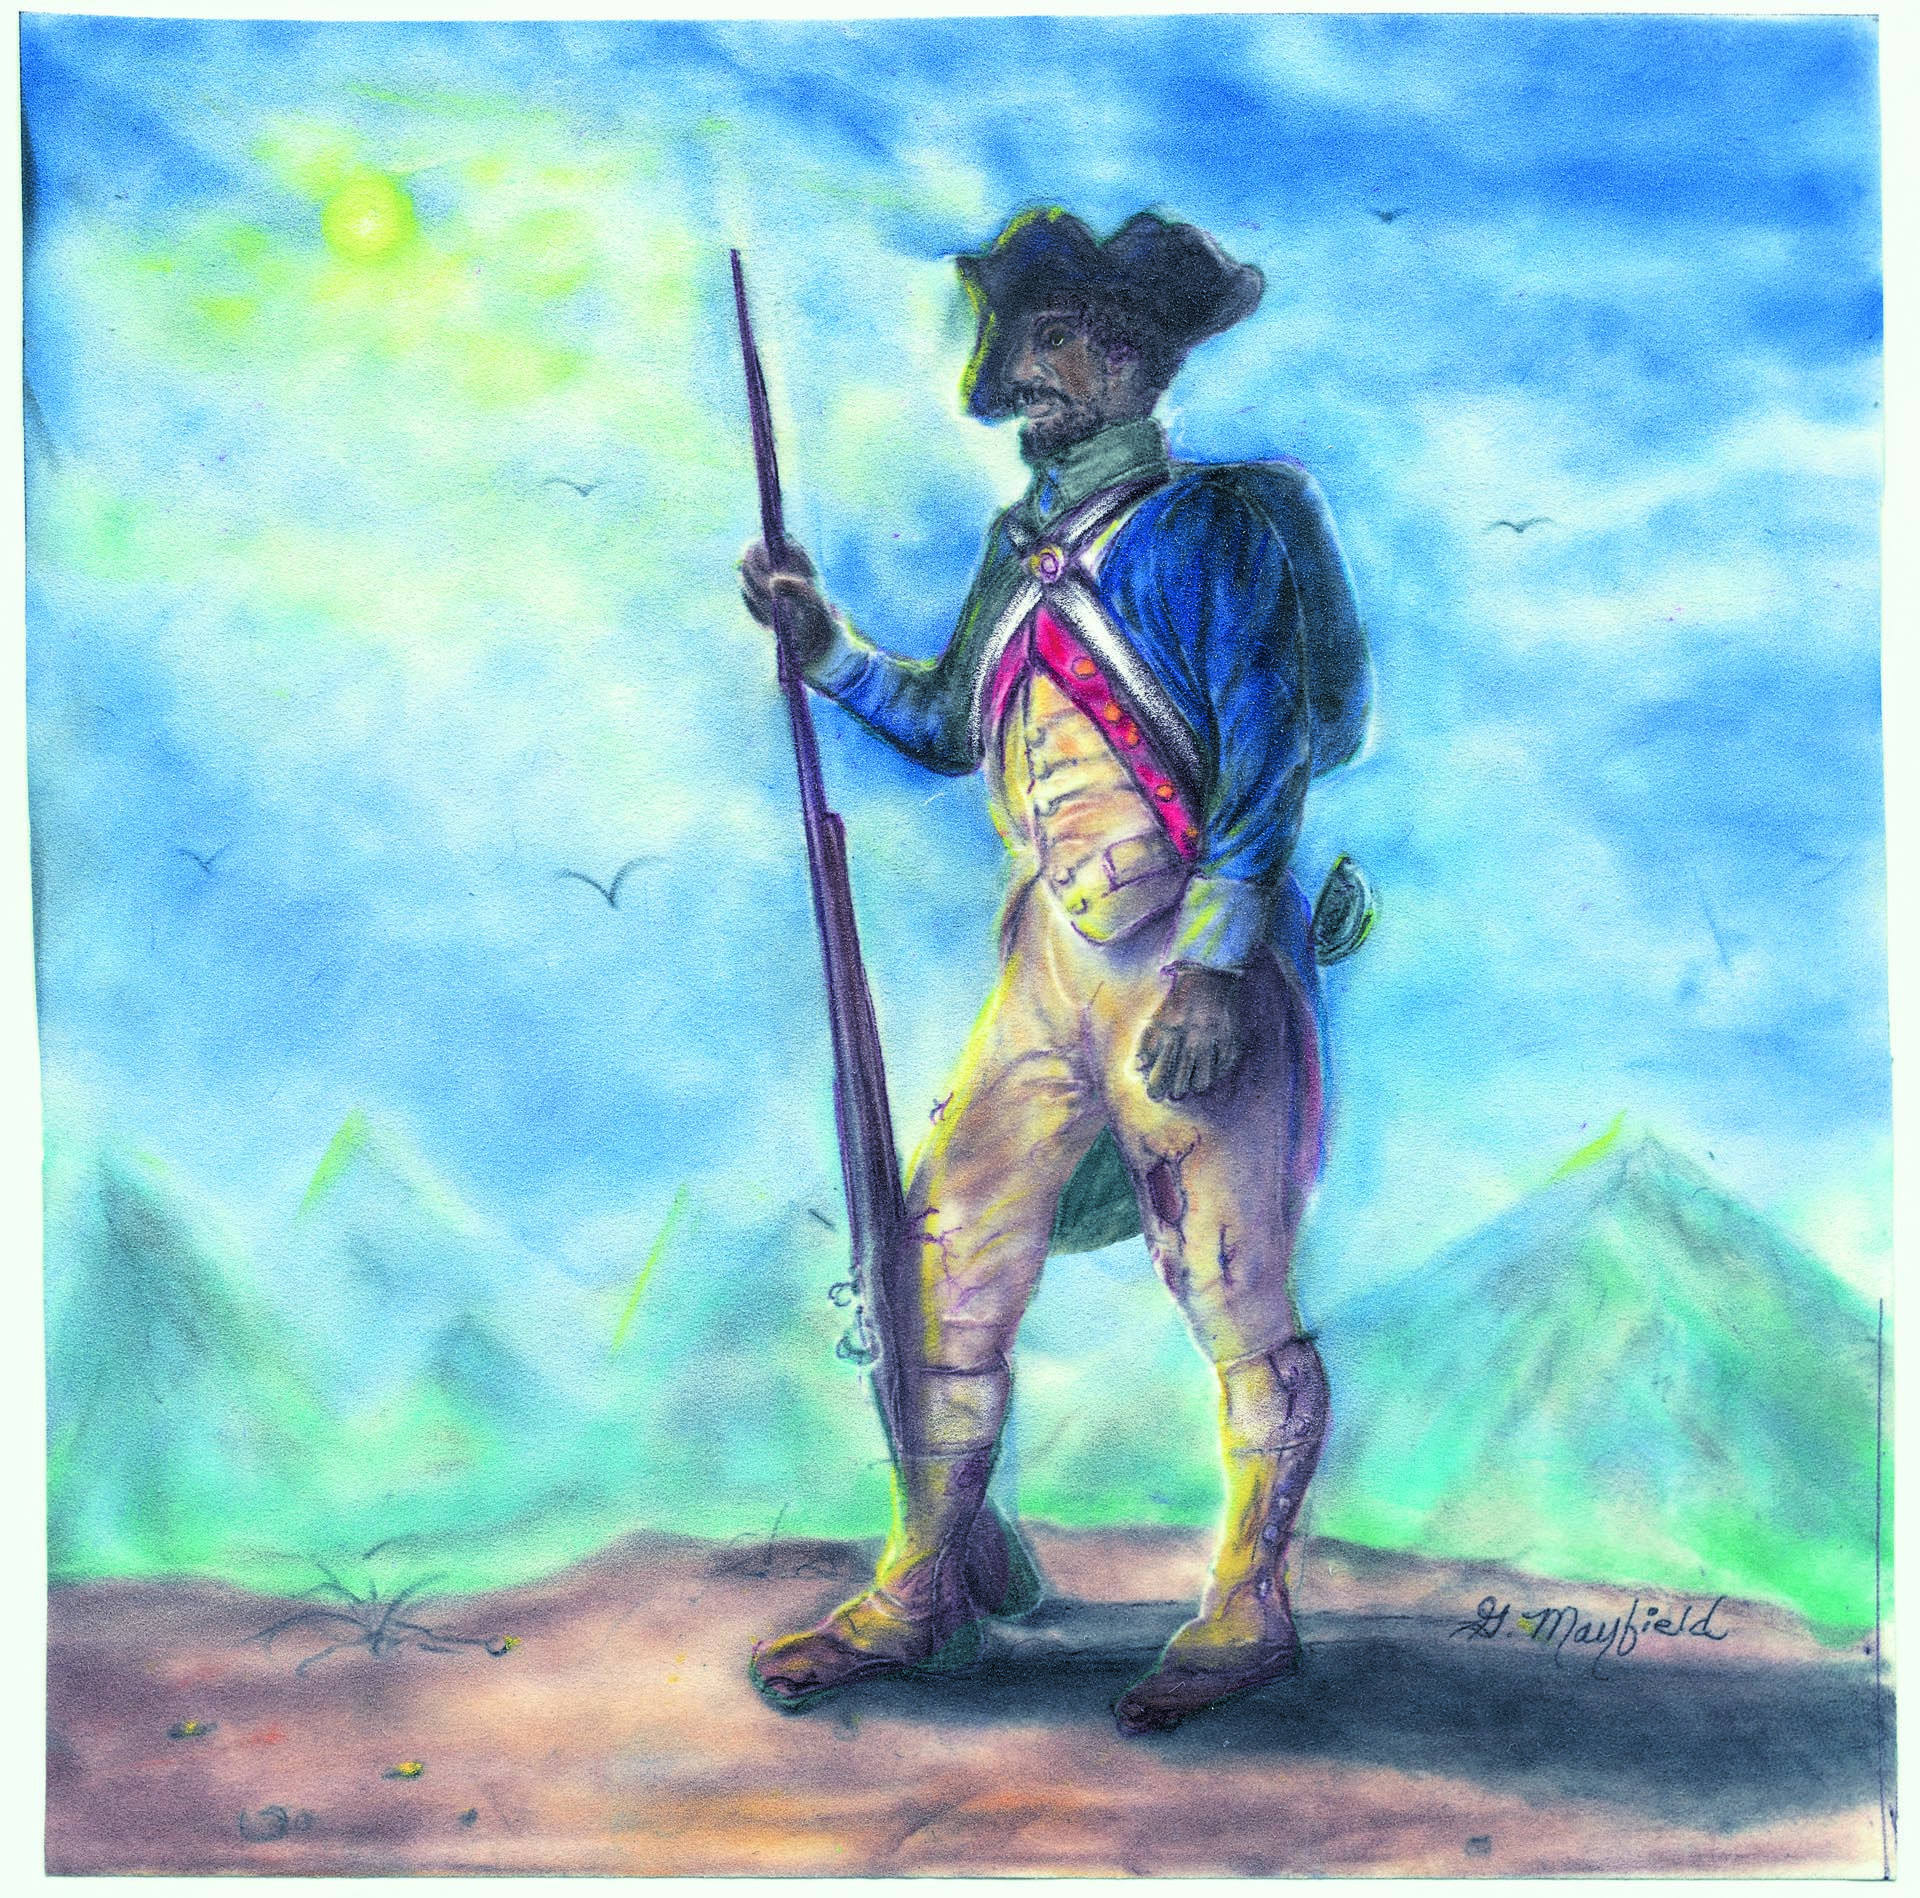 The Book Is About The Black Soldiers And Seamen In The American Revolutionary War And Their Legacy American Revolutionary War Revolutionary War History